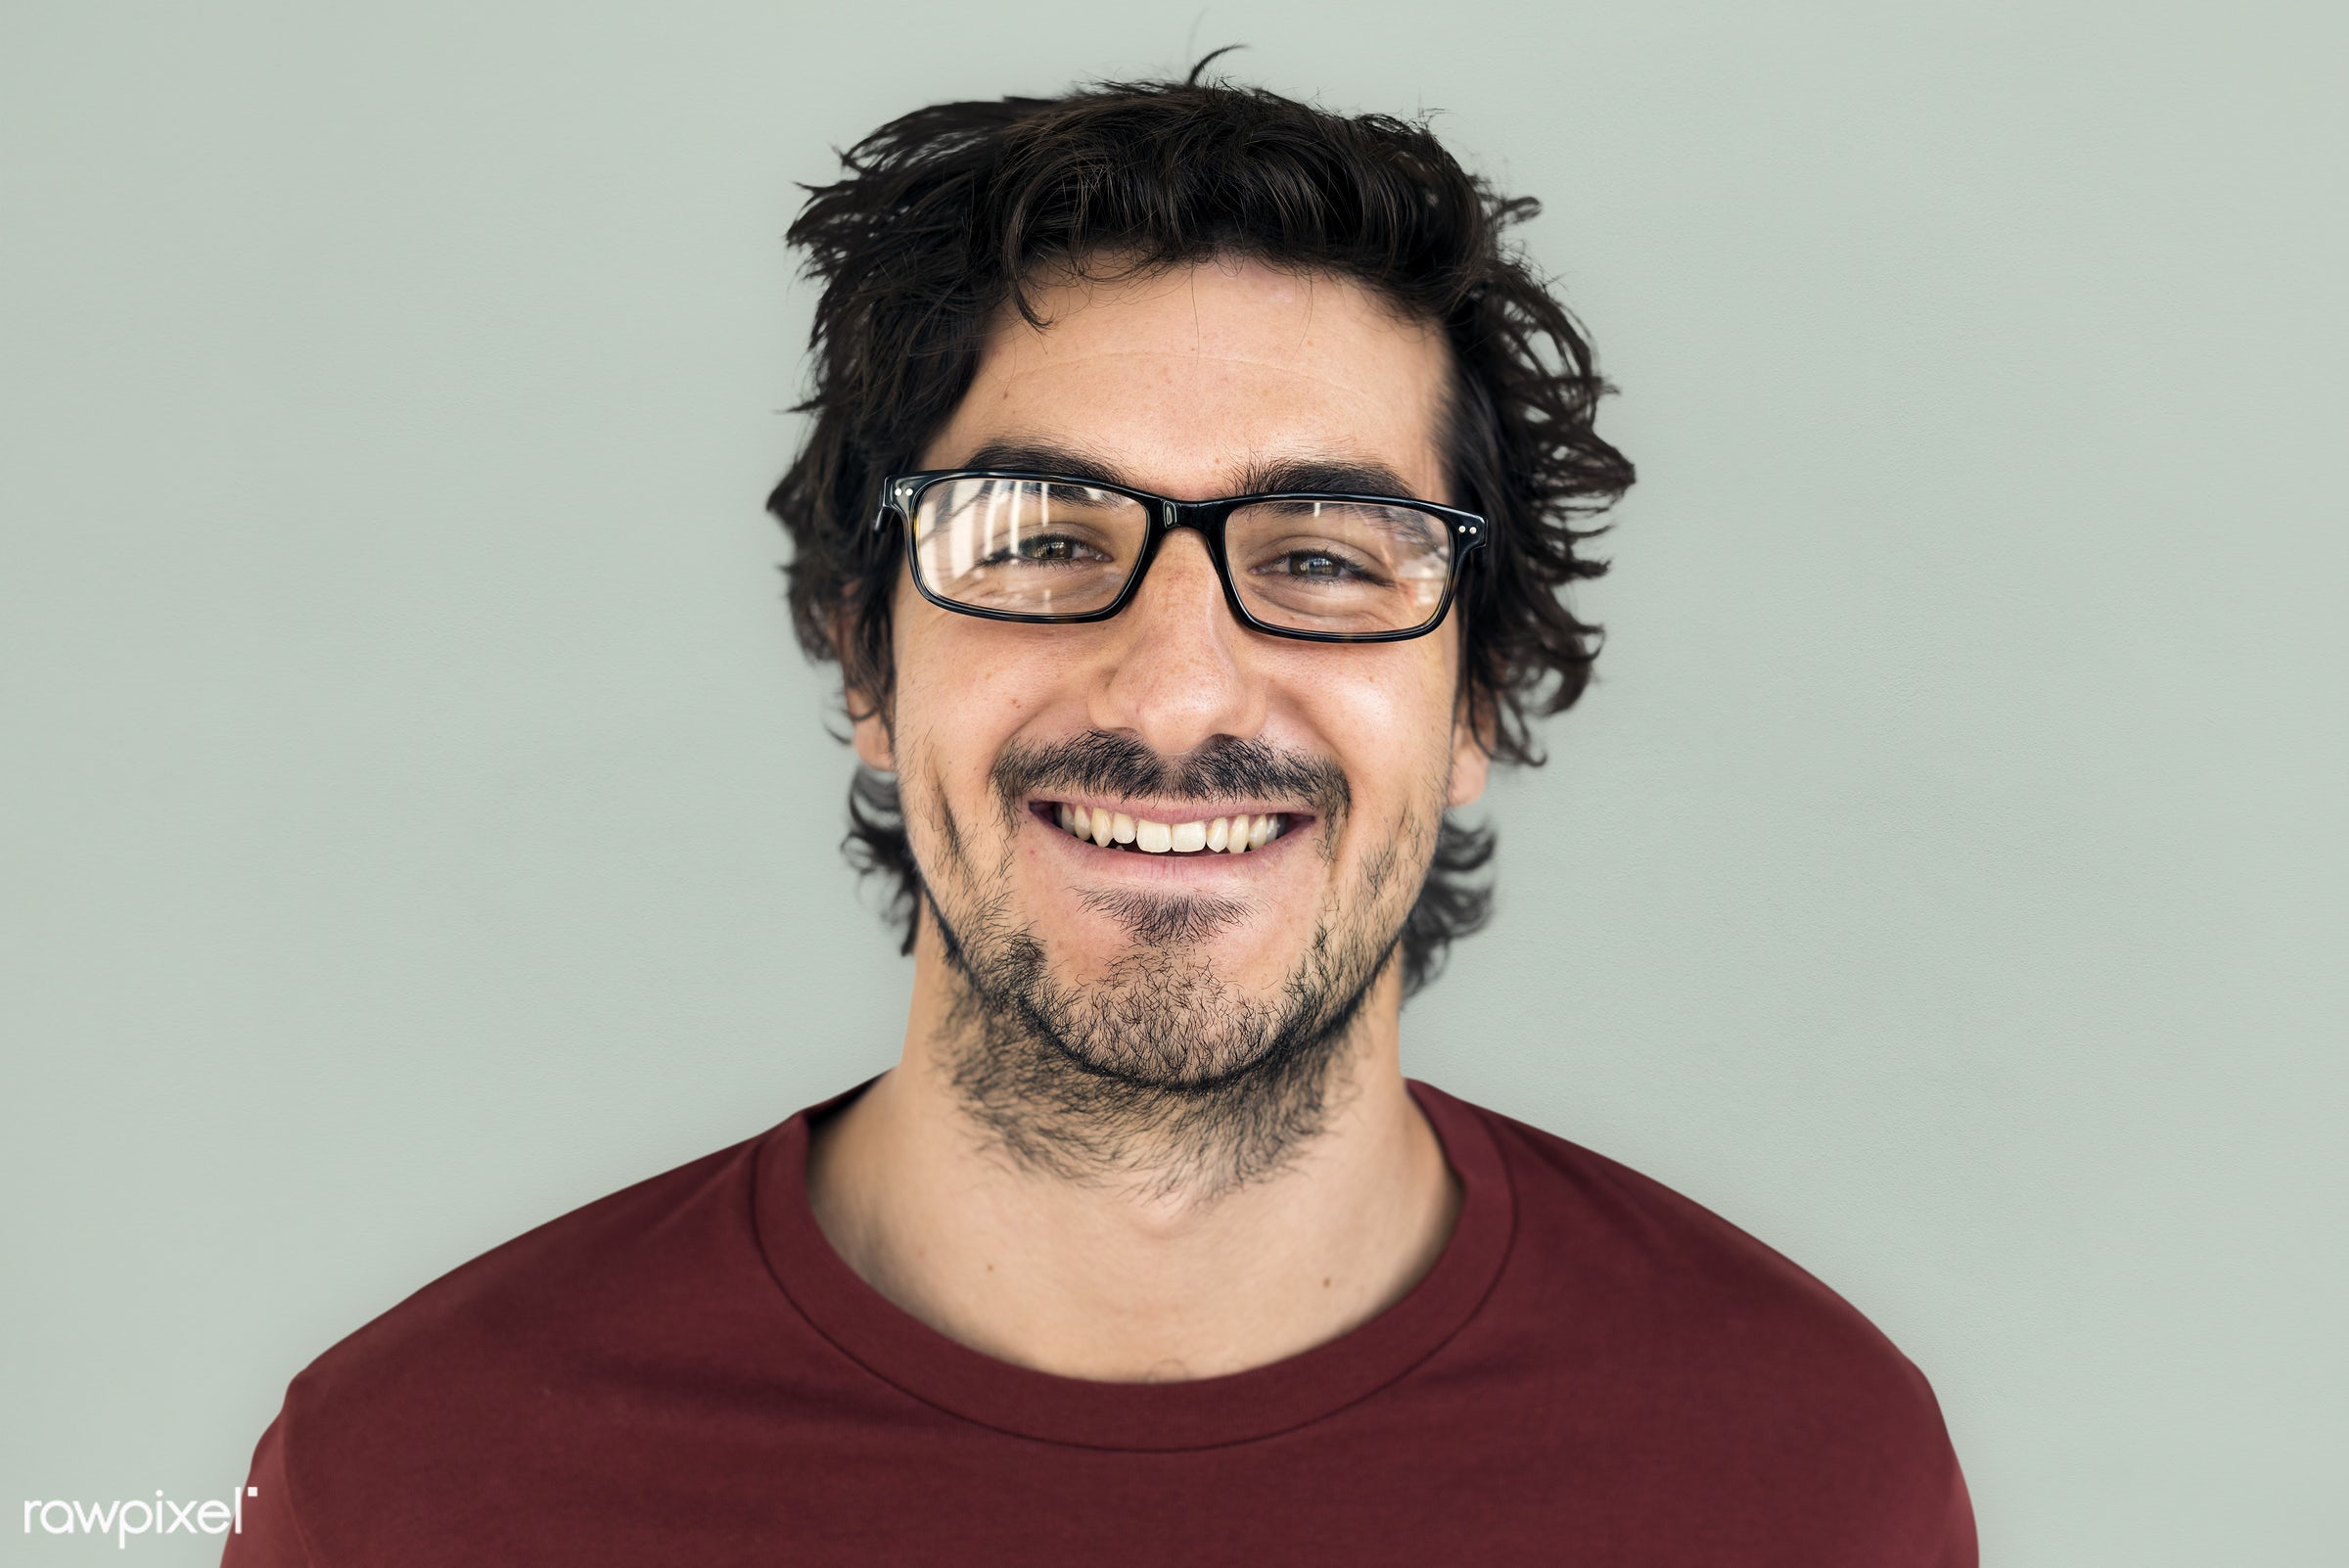 studio, intelligent, expression, earth tone, person, glasses, people, caucasian, looking, style, happy, casual, man, smiling...